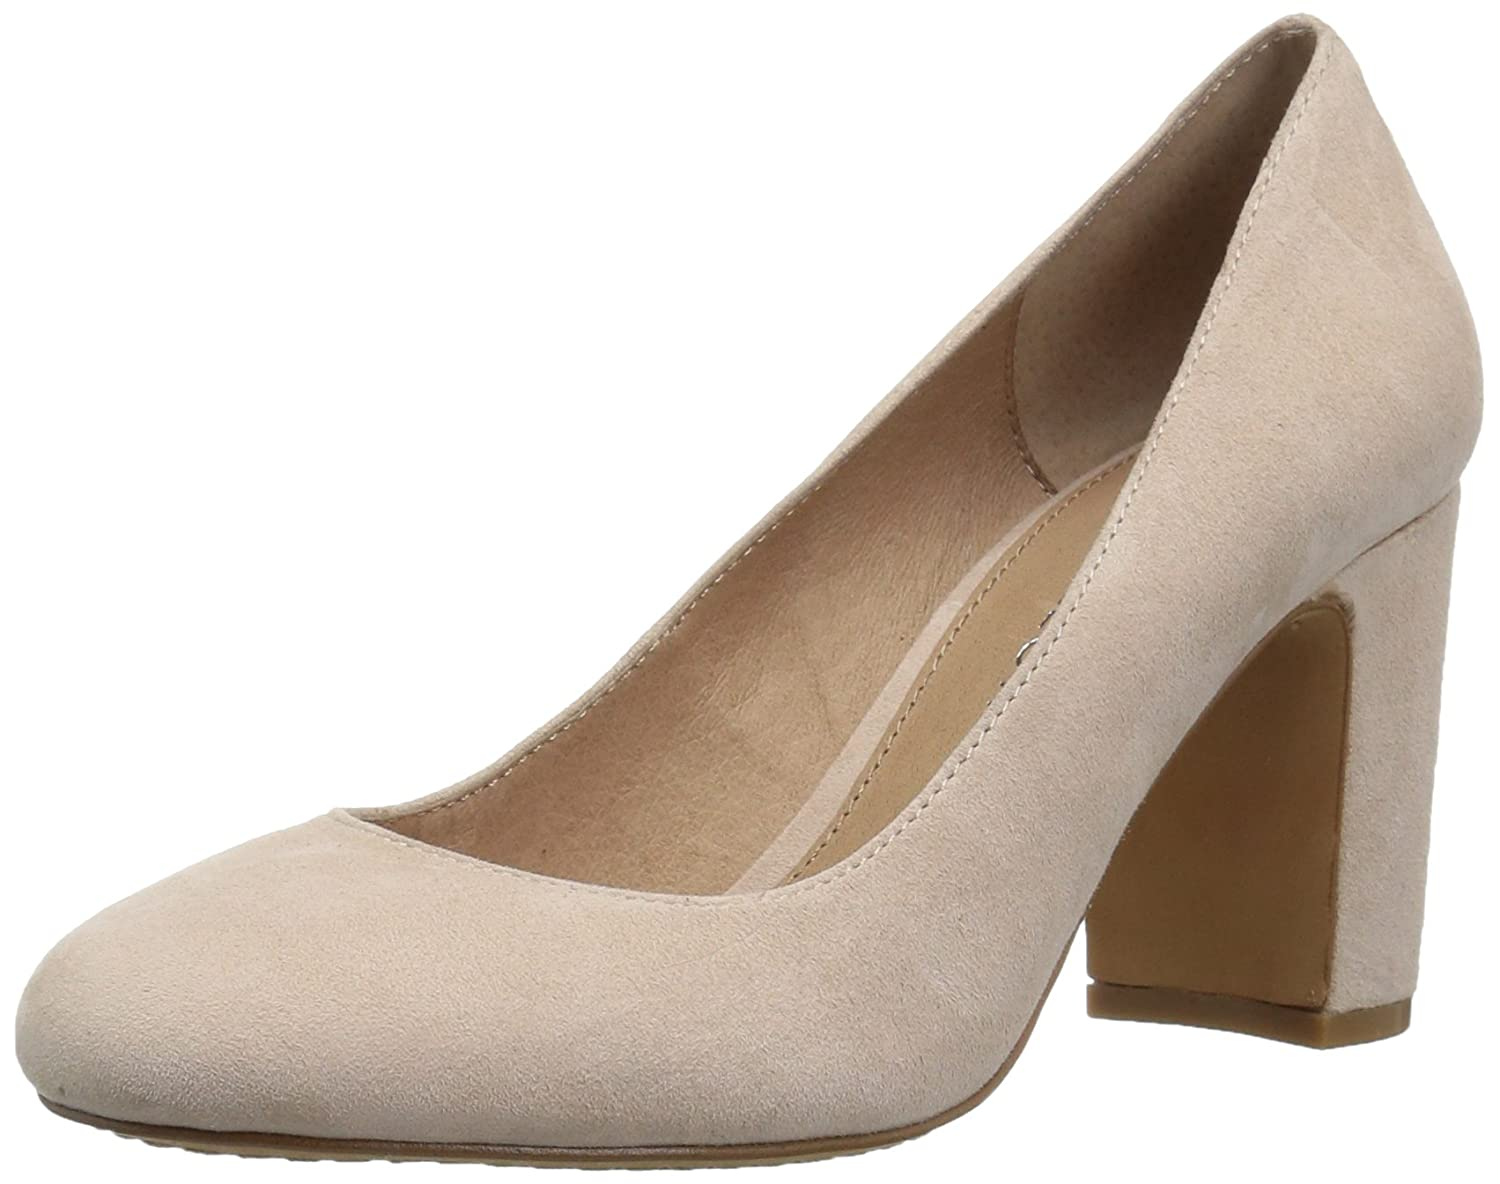 206 Collective Women's Coyle Round Toe Block Heel High Pump B0789631FN 6.5 C/D US|Blush Suede